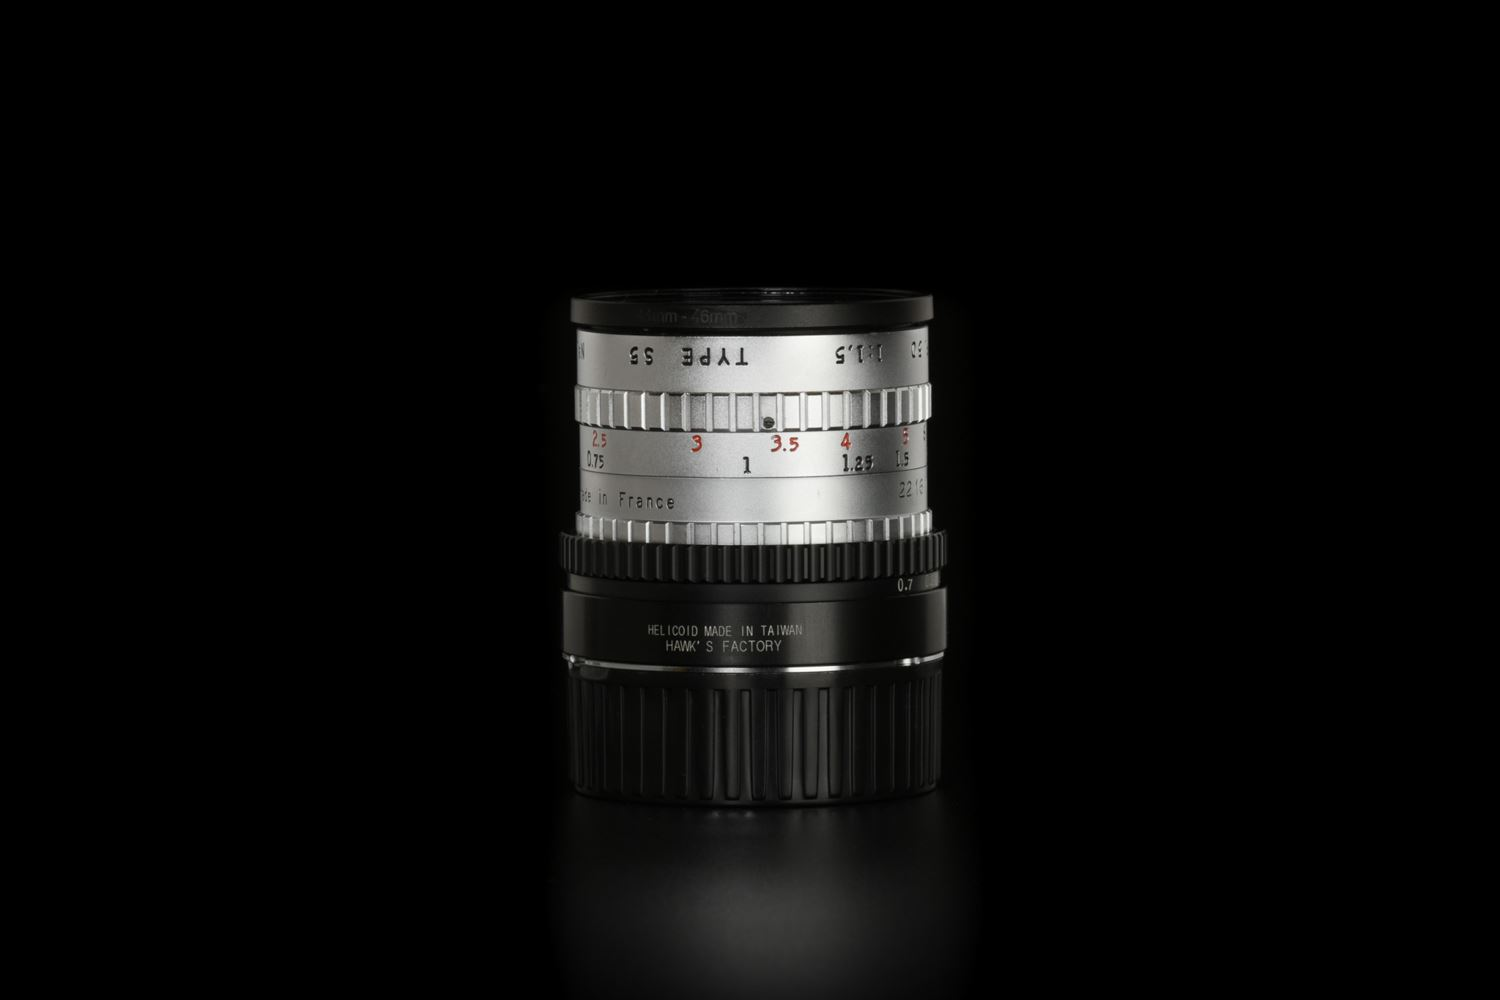 Picture of Angenieux Type S5 50mm f/1.5 Modified to Leica M